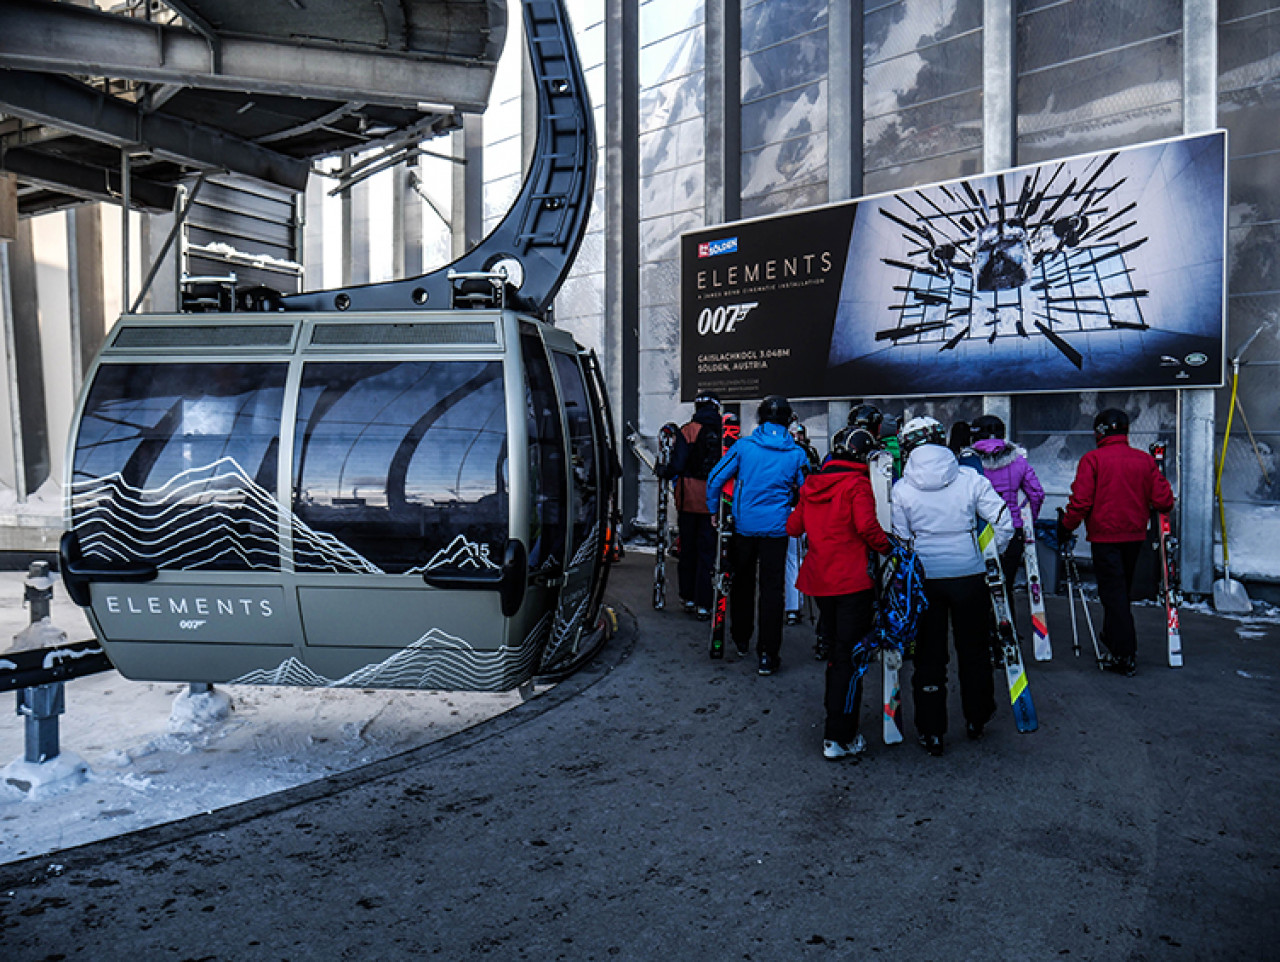 The second cable car ride has a number of Spectre-themed gondolas. As soon as we were out of the station, the movie soundtrack started to play. What an incredible way to approach a location.